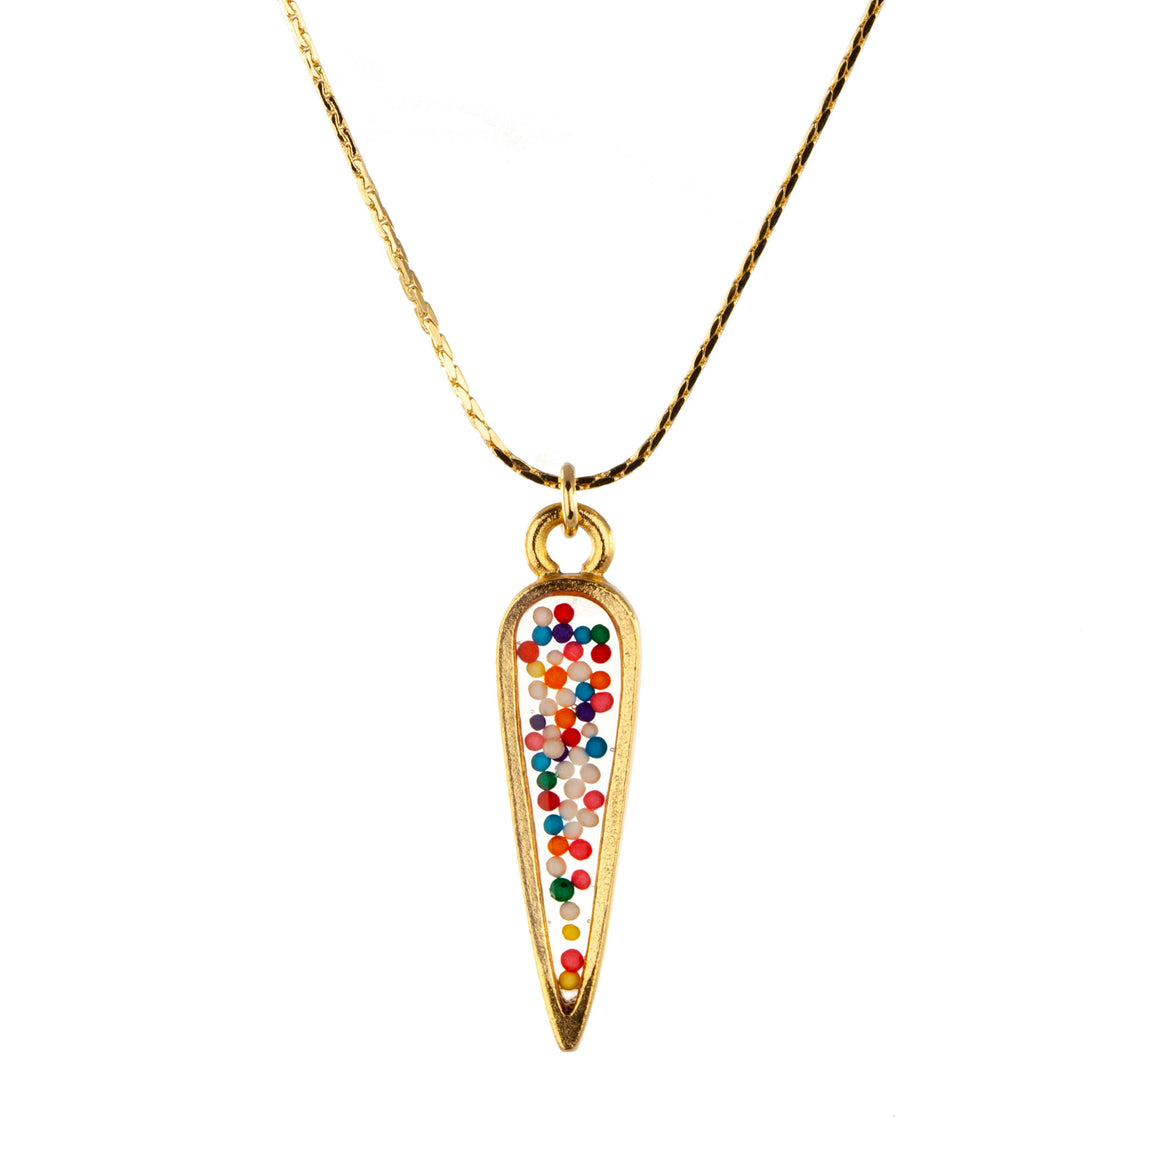 Sprinkles | Small Ancient Drop Necklace